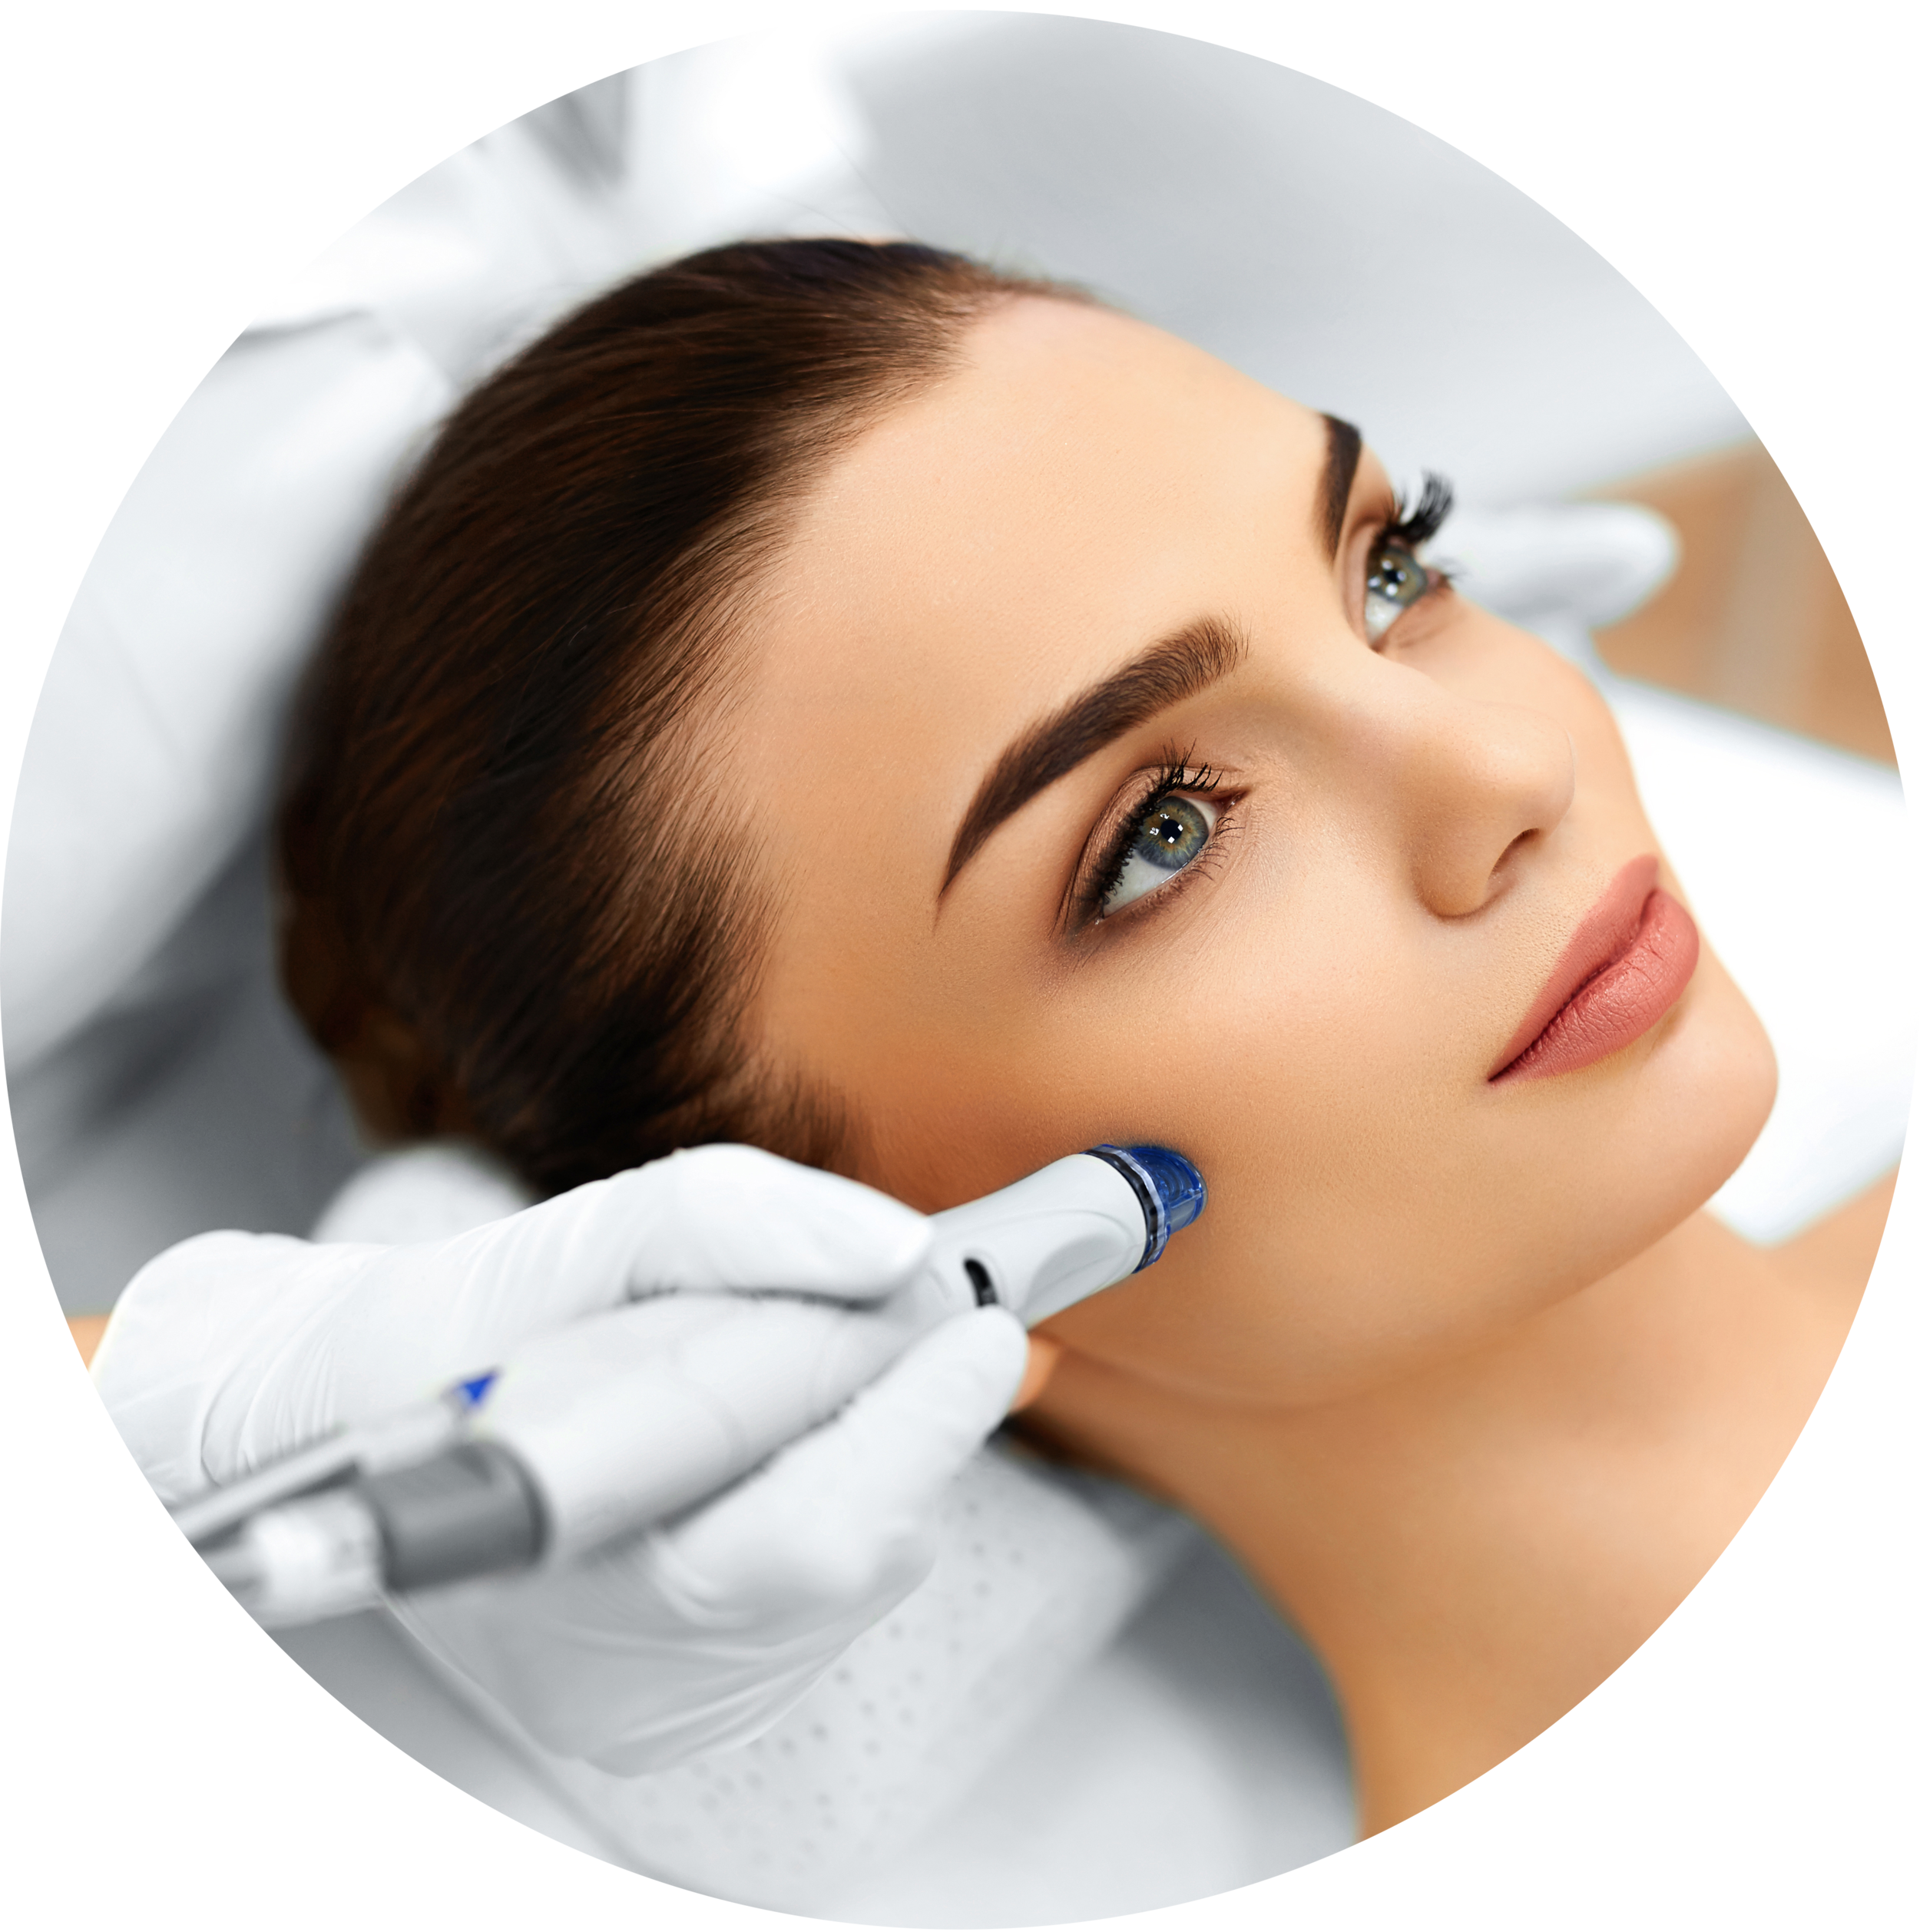 Microdermabrasion Facial - £40 - Available at Nailsea beauty room only on TuesdaysMicrodermabrasian is a chemical free, non invasive treatment that uses ultra fine micro crystals to exfoliate the skin and remove impurities.